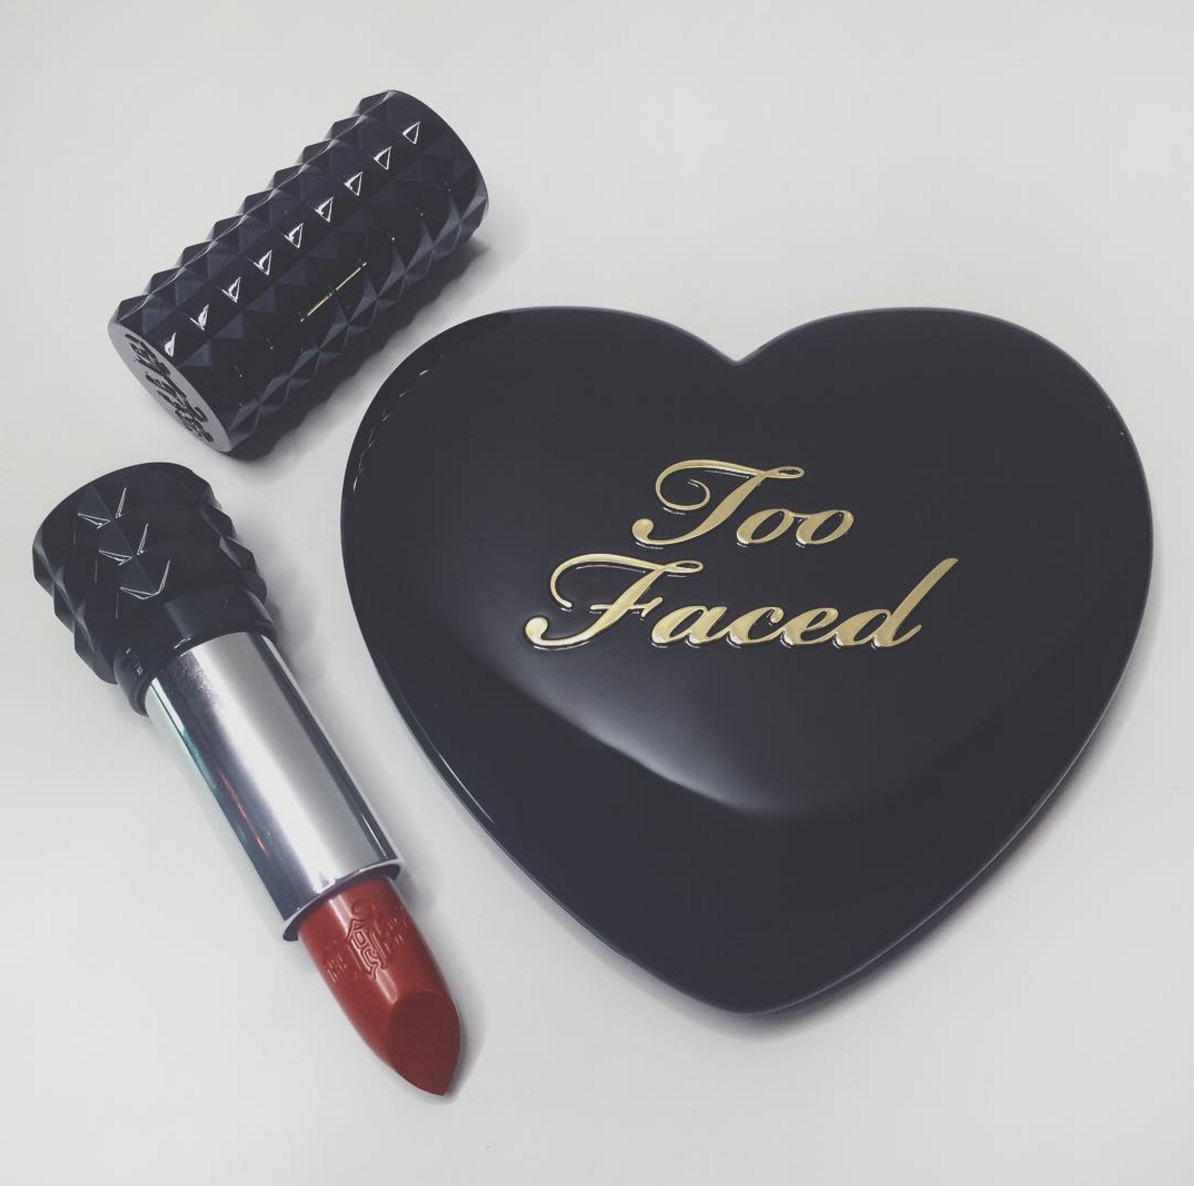 kat von d x too faced